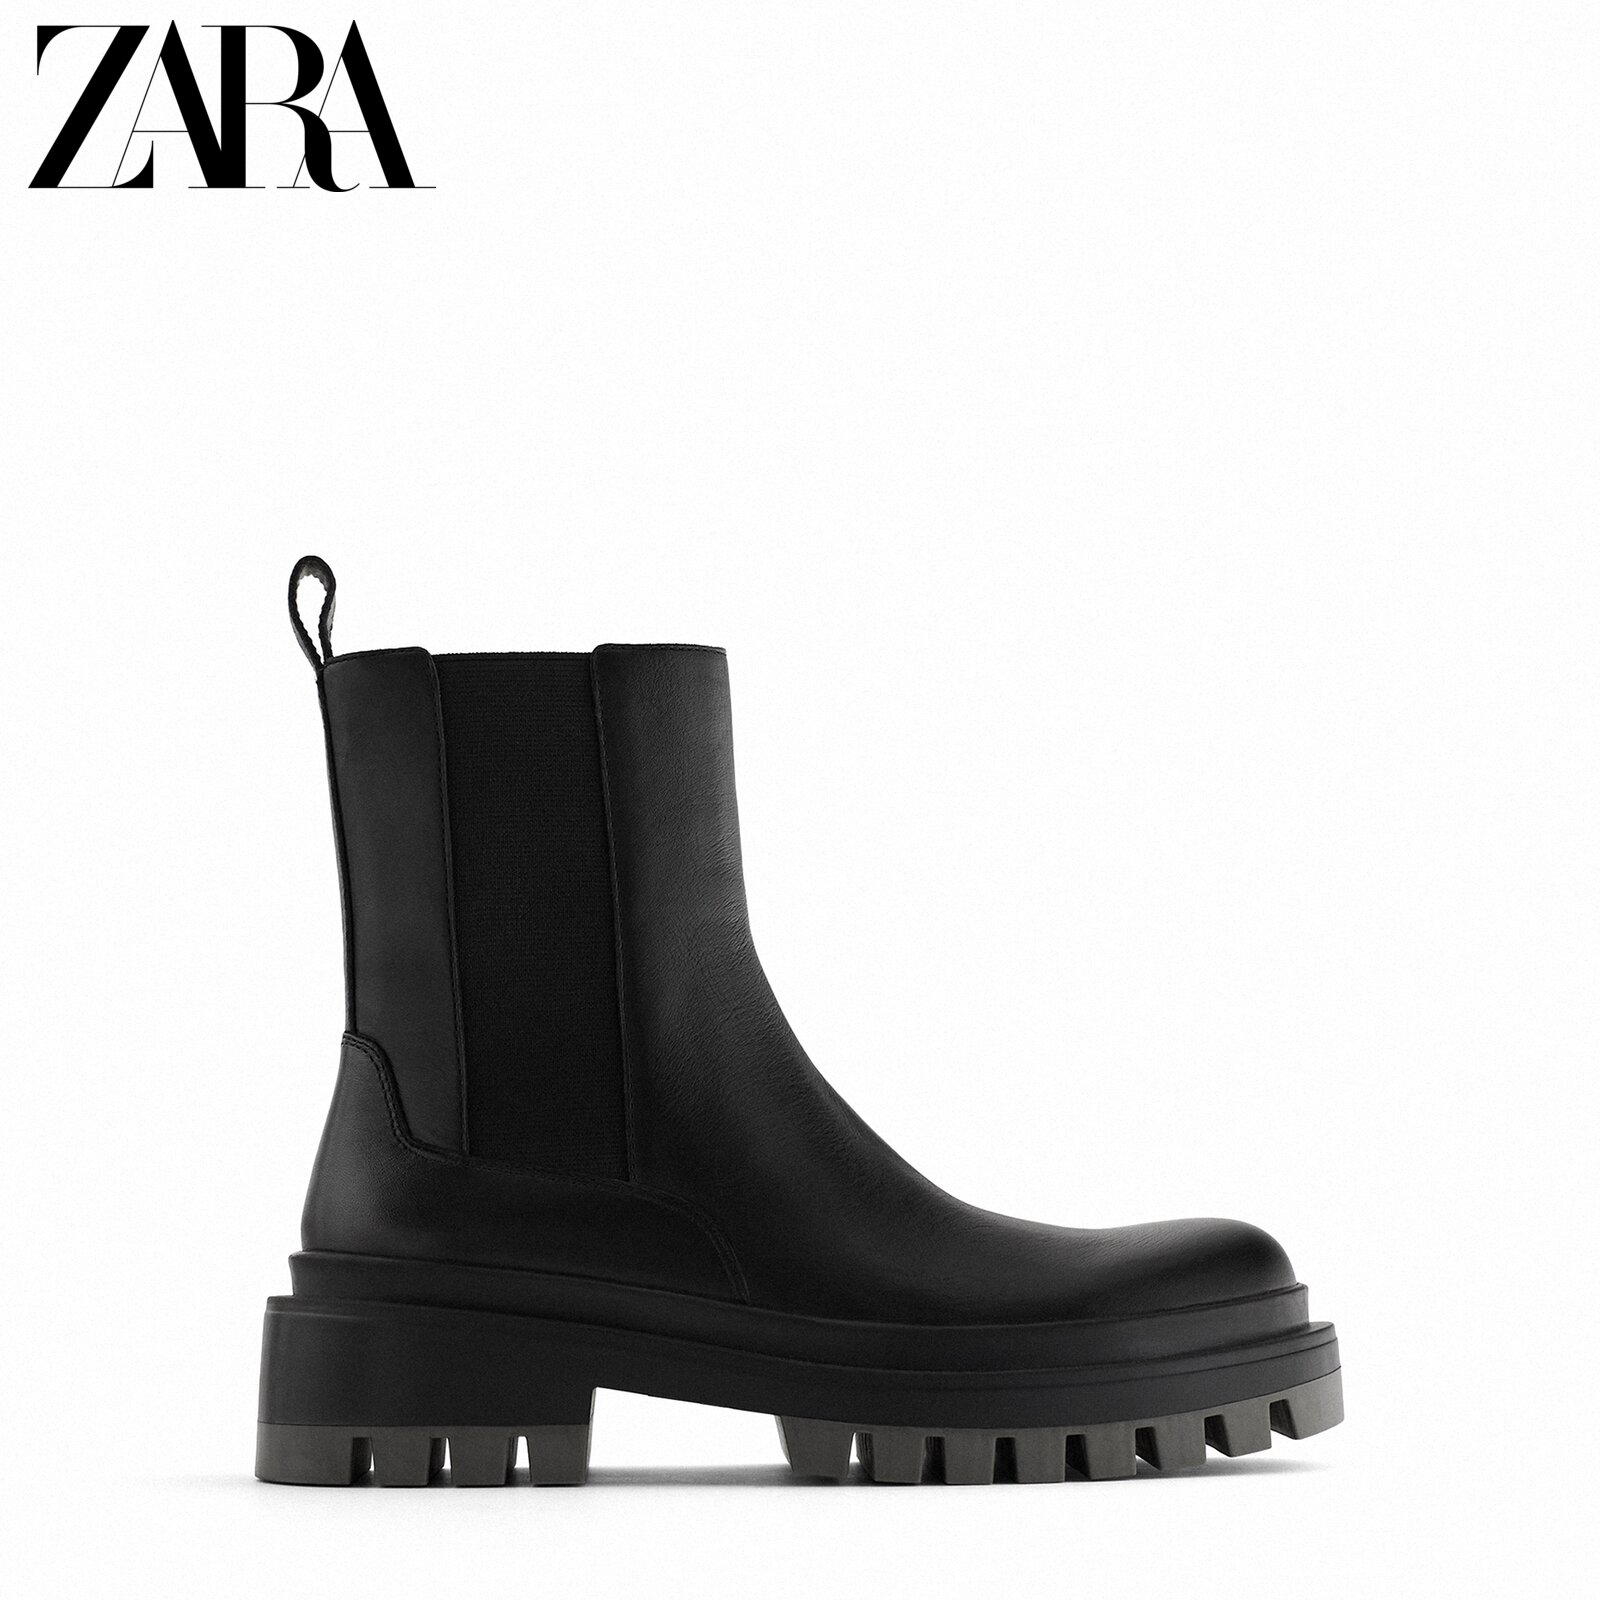 Zara new women's shoes black wavy thick-soled increased bottom cow leather chimney ankle boots 11107612040